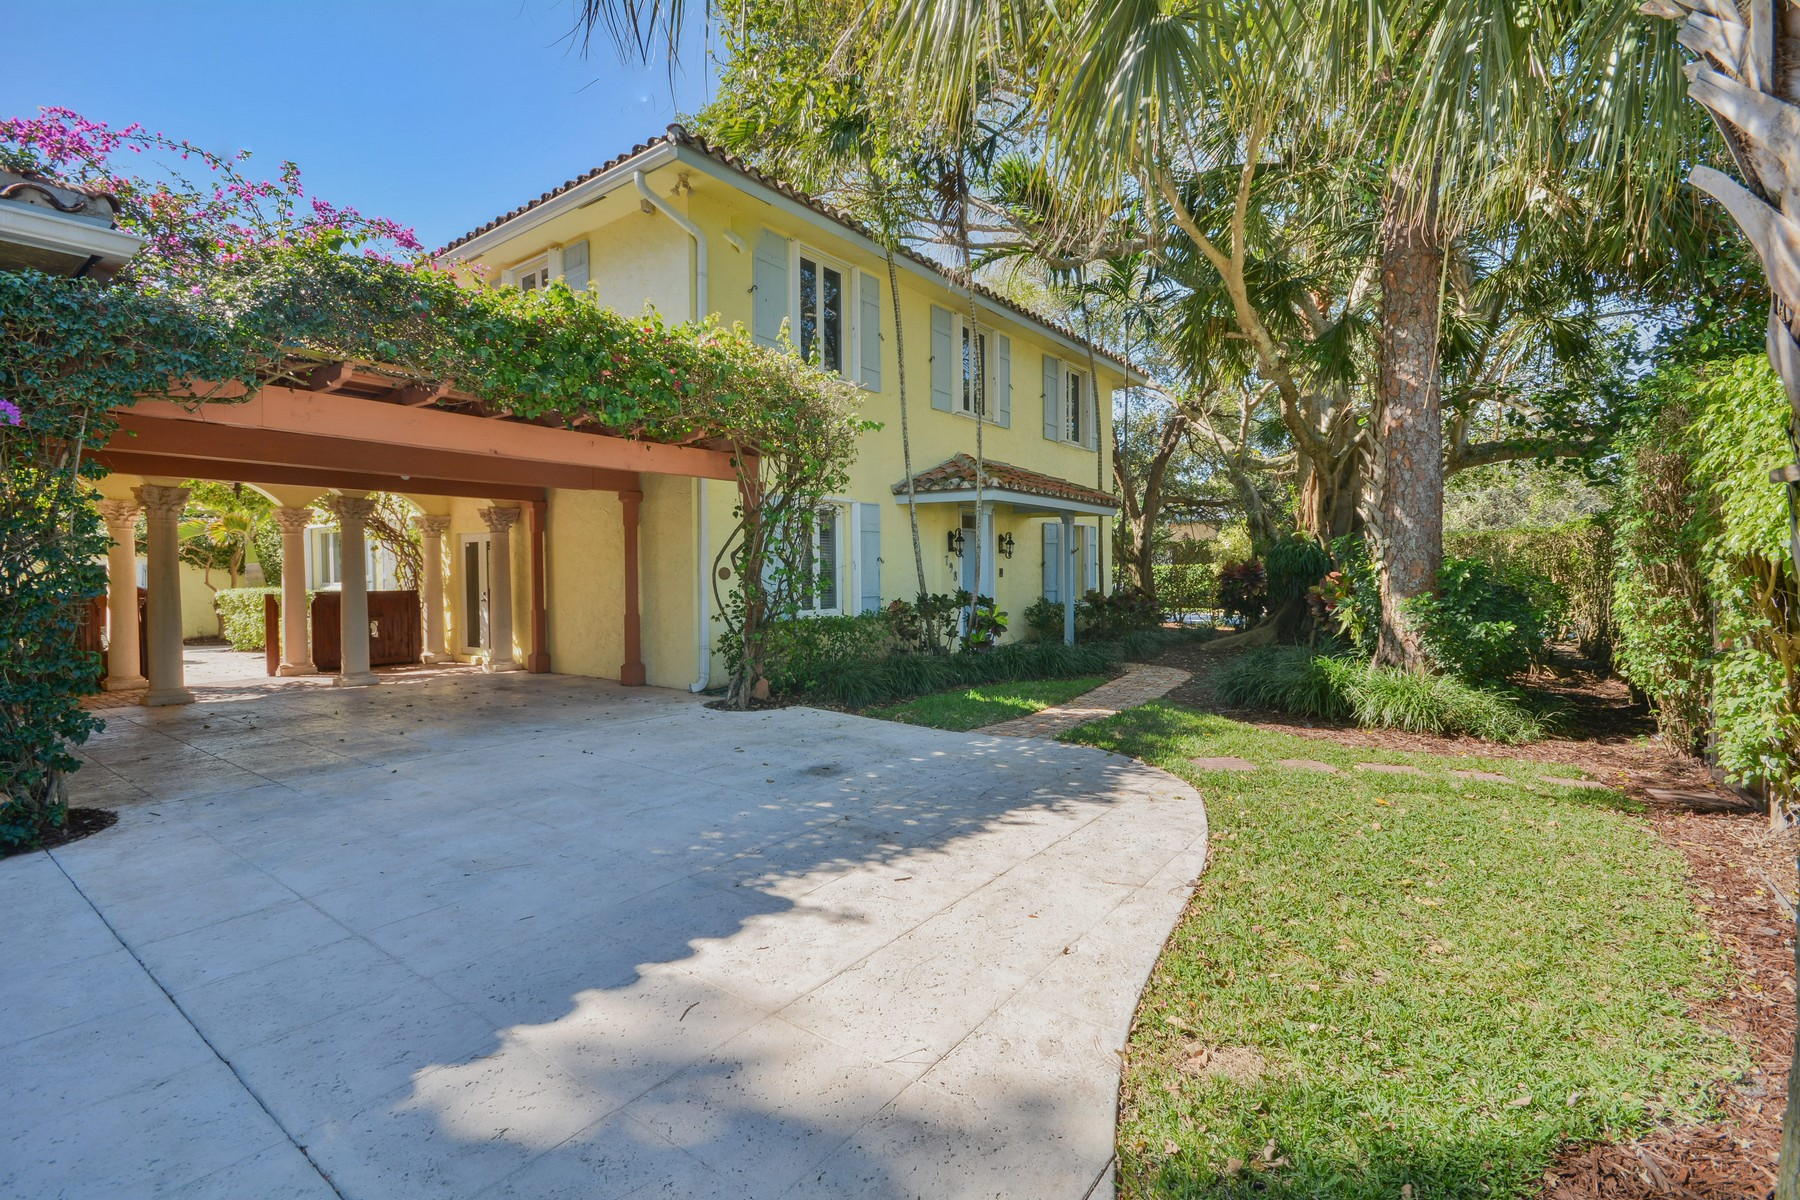 Single Family Home for Sale at 798 Periwinkle St , Boca Raton, FL 33486 798 Periwinkle St Boca Raton, Florida, 33486 United States